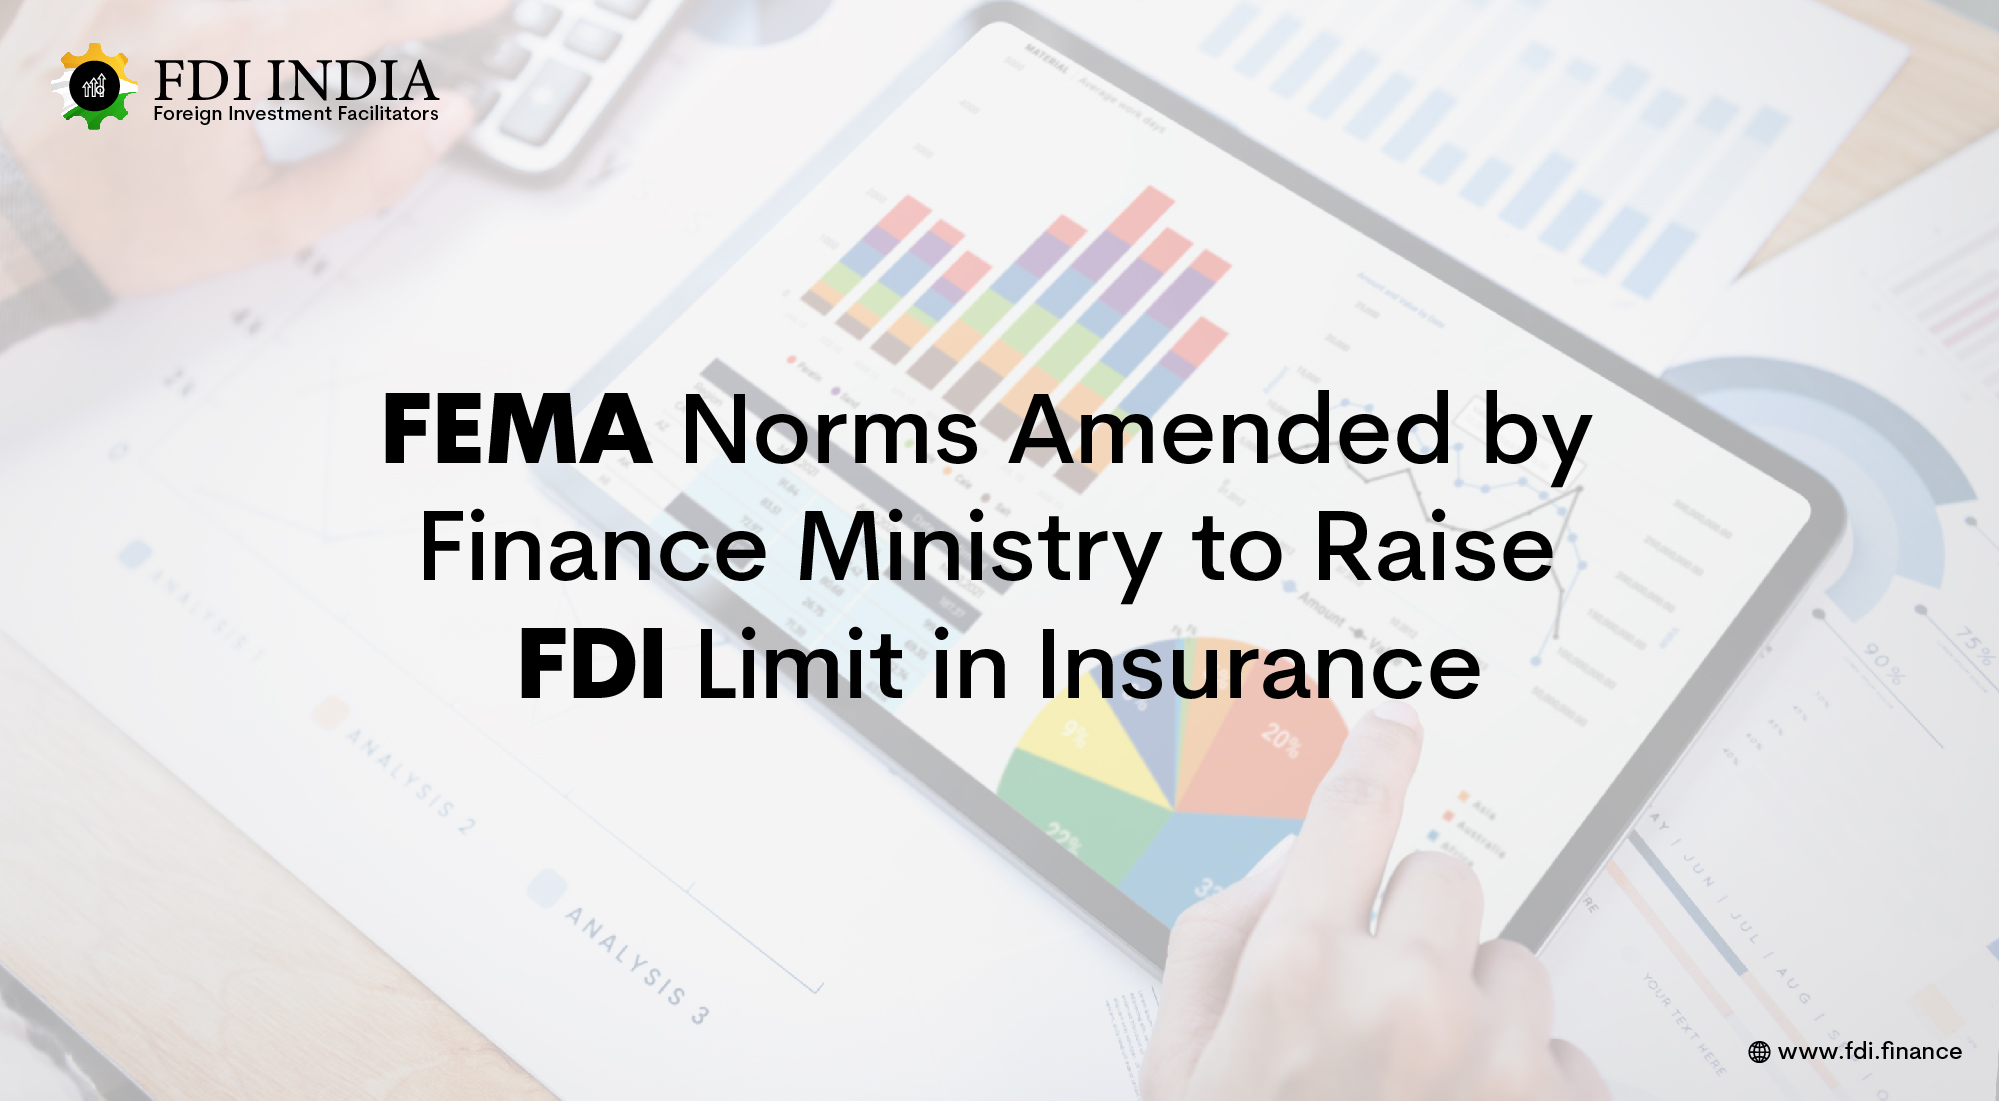 FEMA Norms Amended by Finance Ministry to Raise FDI Limit in Insurance